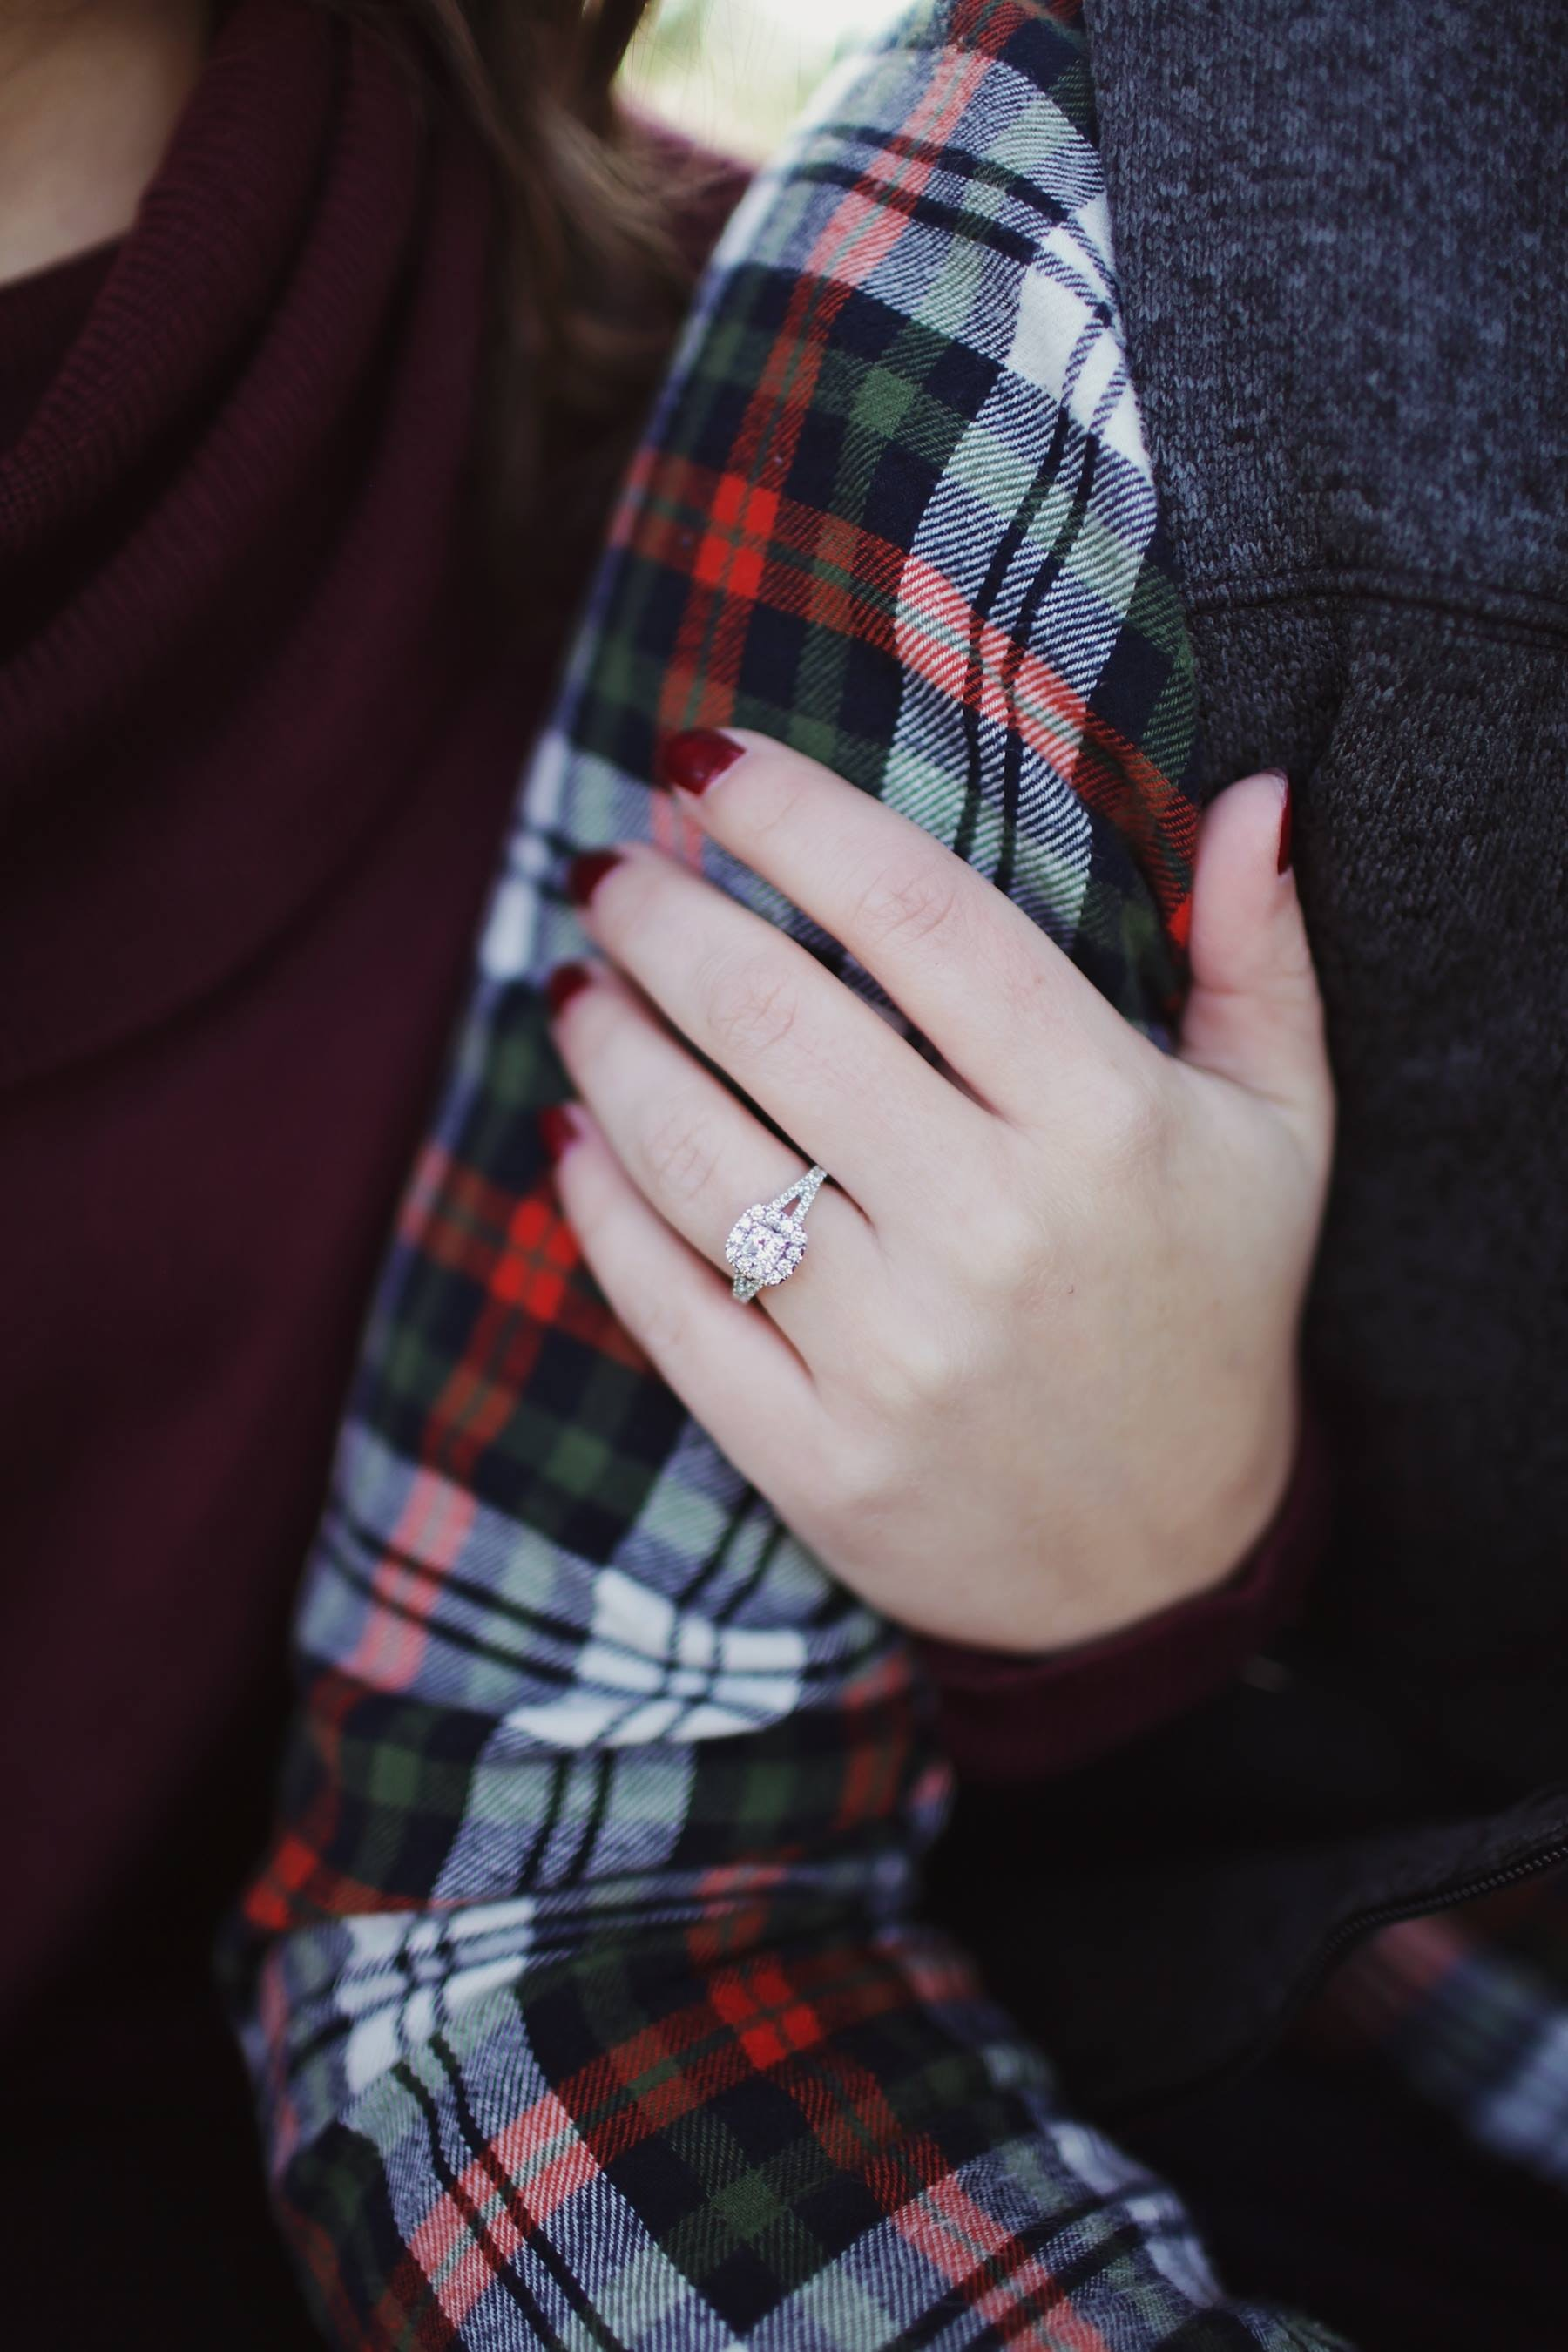 Woman wearing silver-colored solitaire ring holding person's arm photo